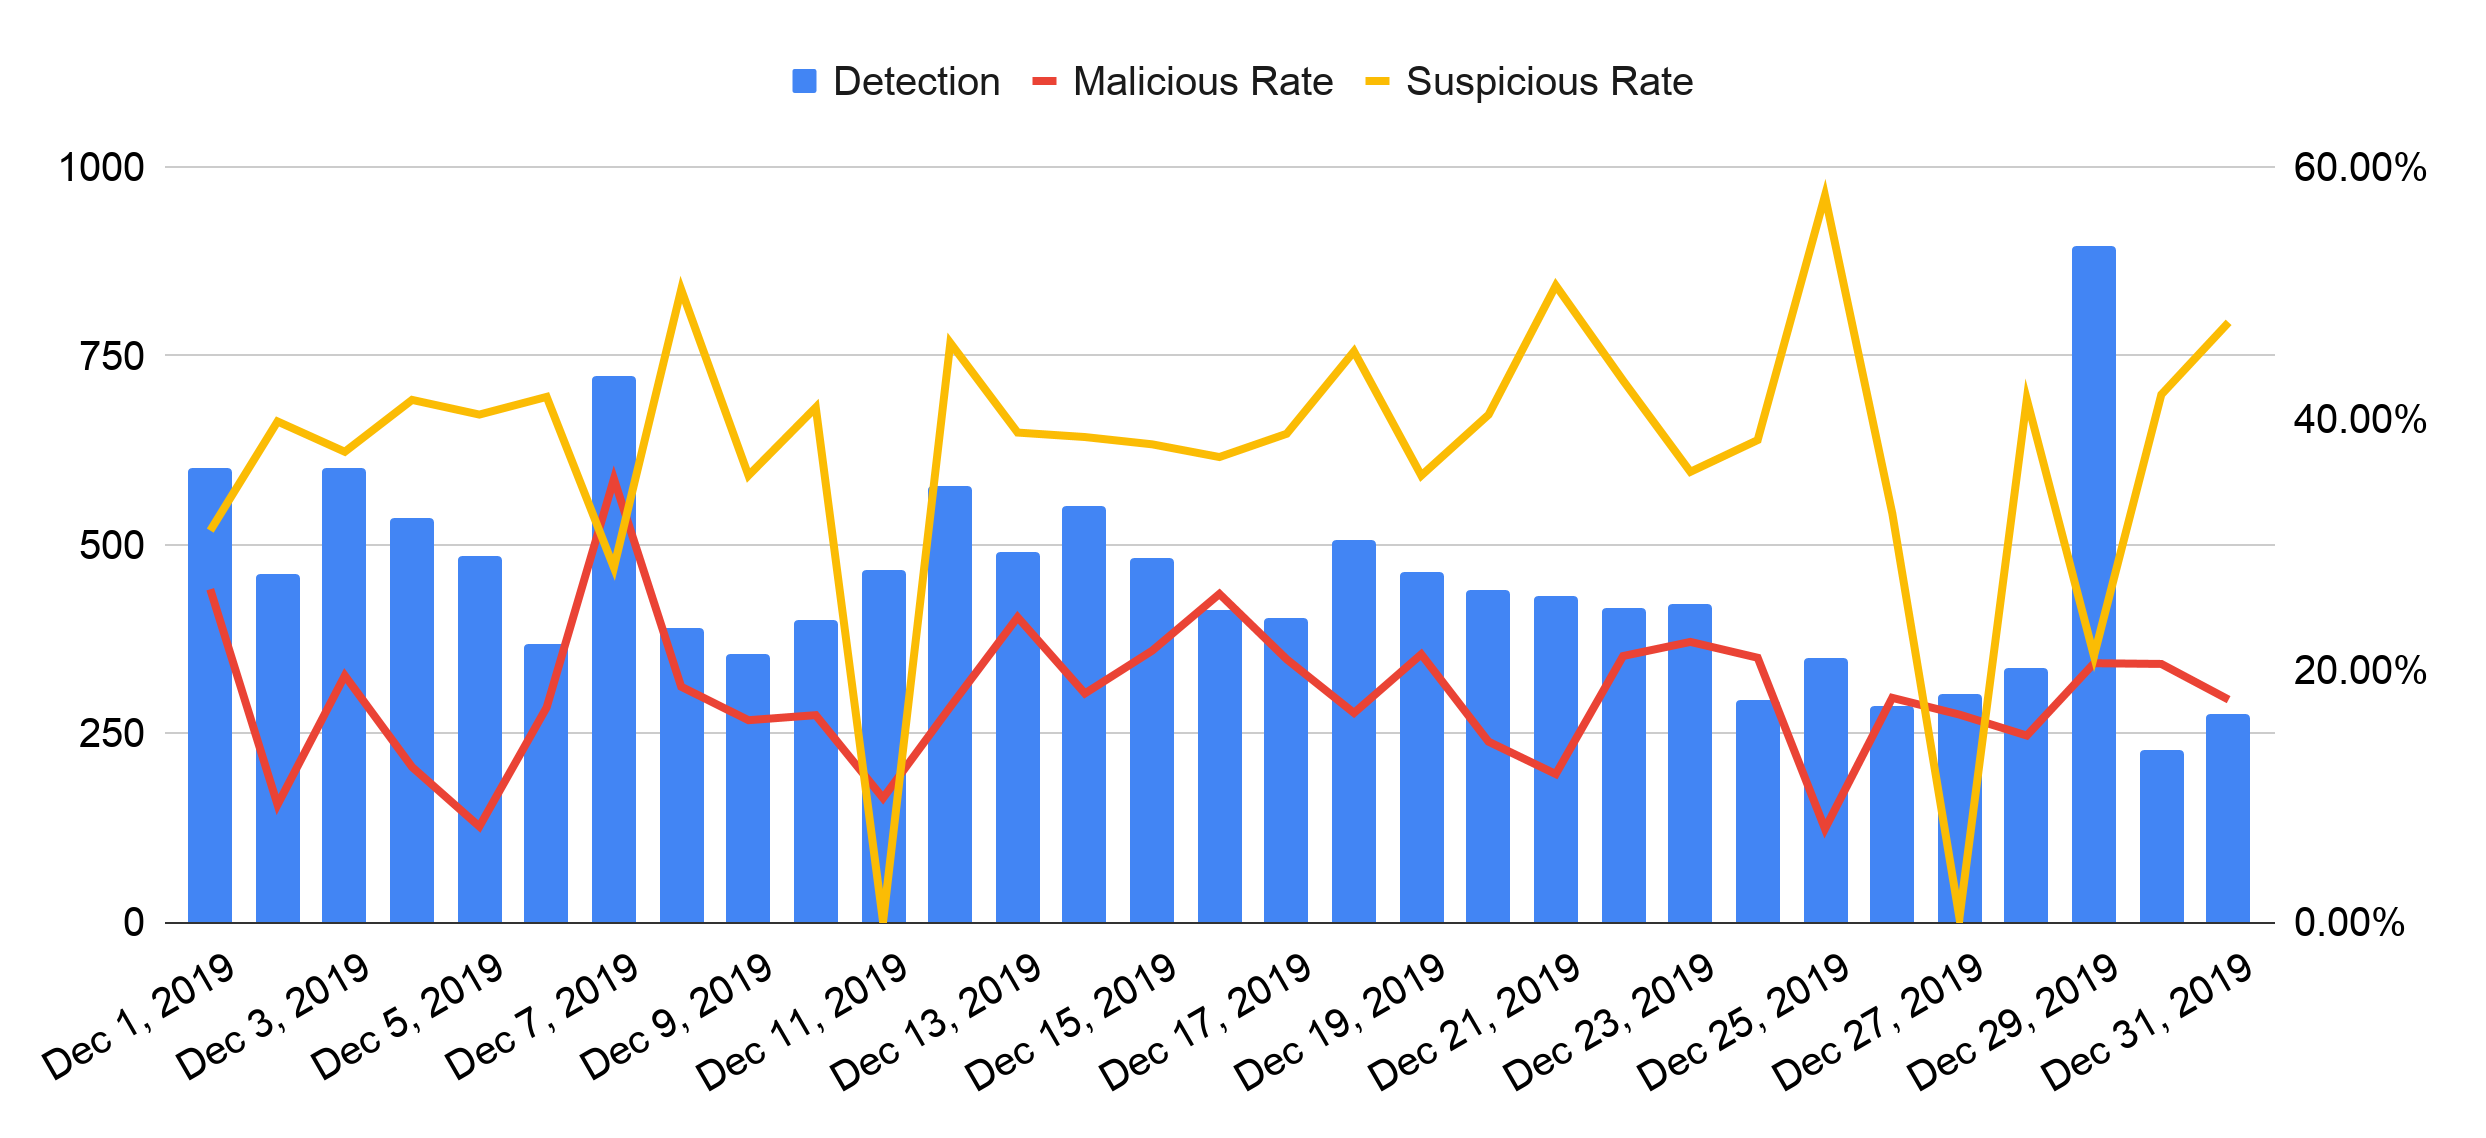 The graph shows daily figures for cybersquatting during December 2019. Blue bars represent detection rates, the red line tracks malicious rates and the yellow line represents the suspicious rate.